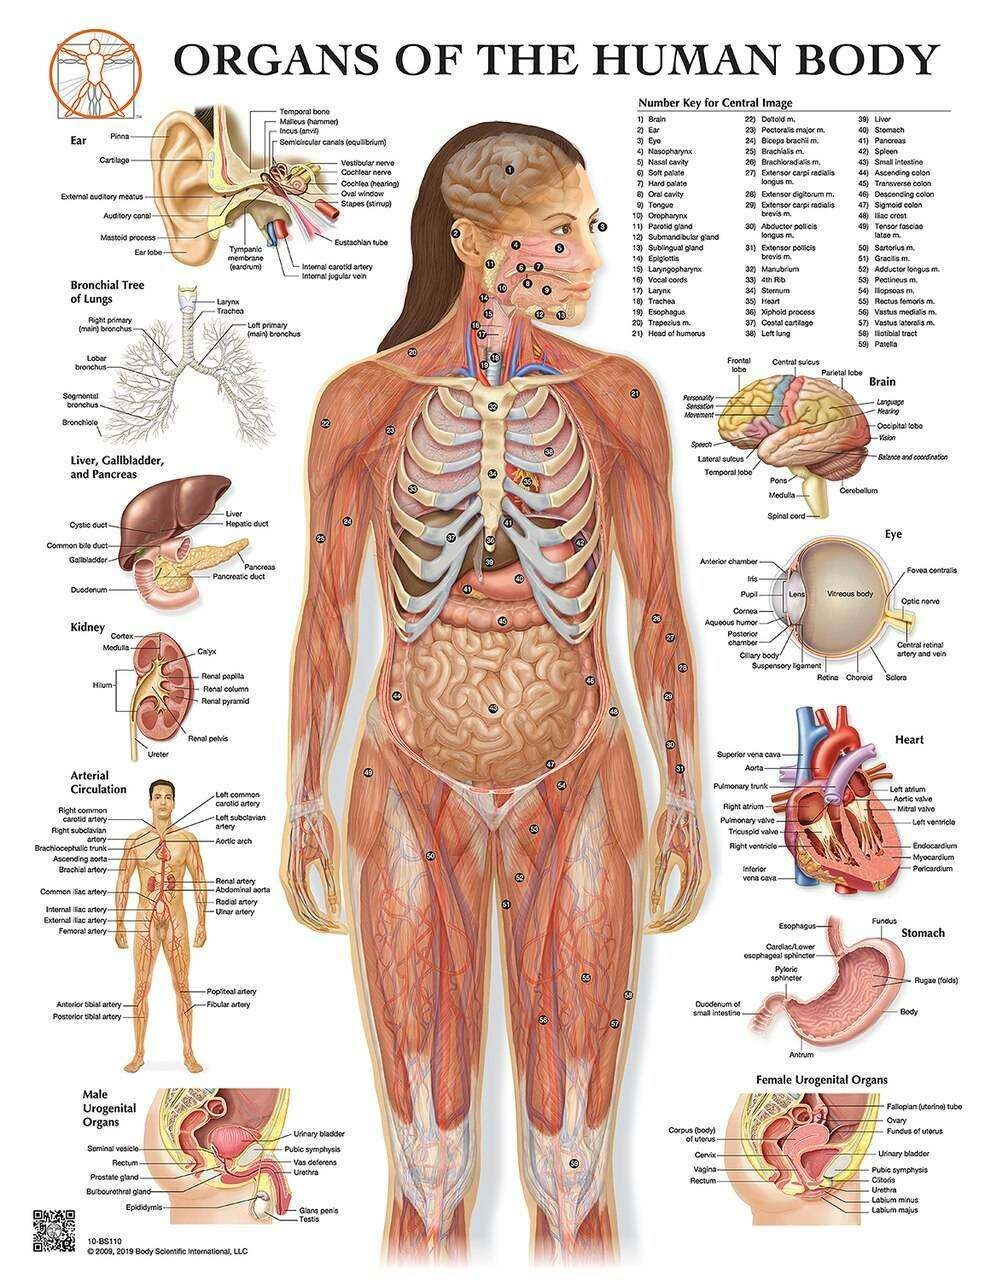 29+ Organs of the human body, poster